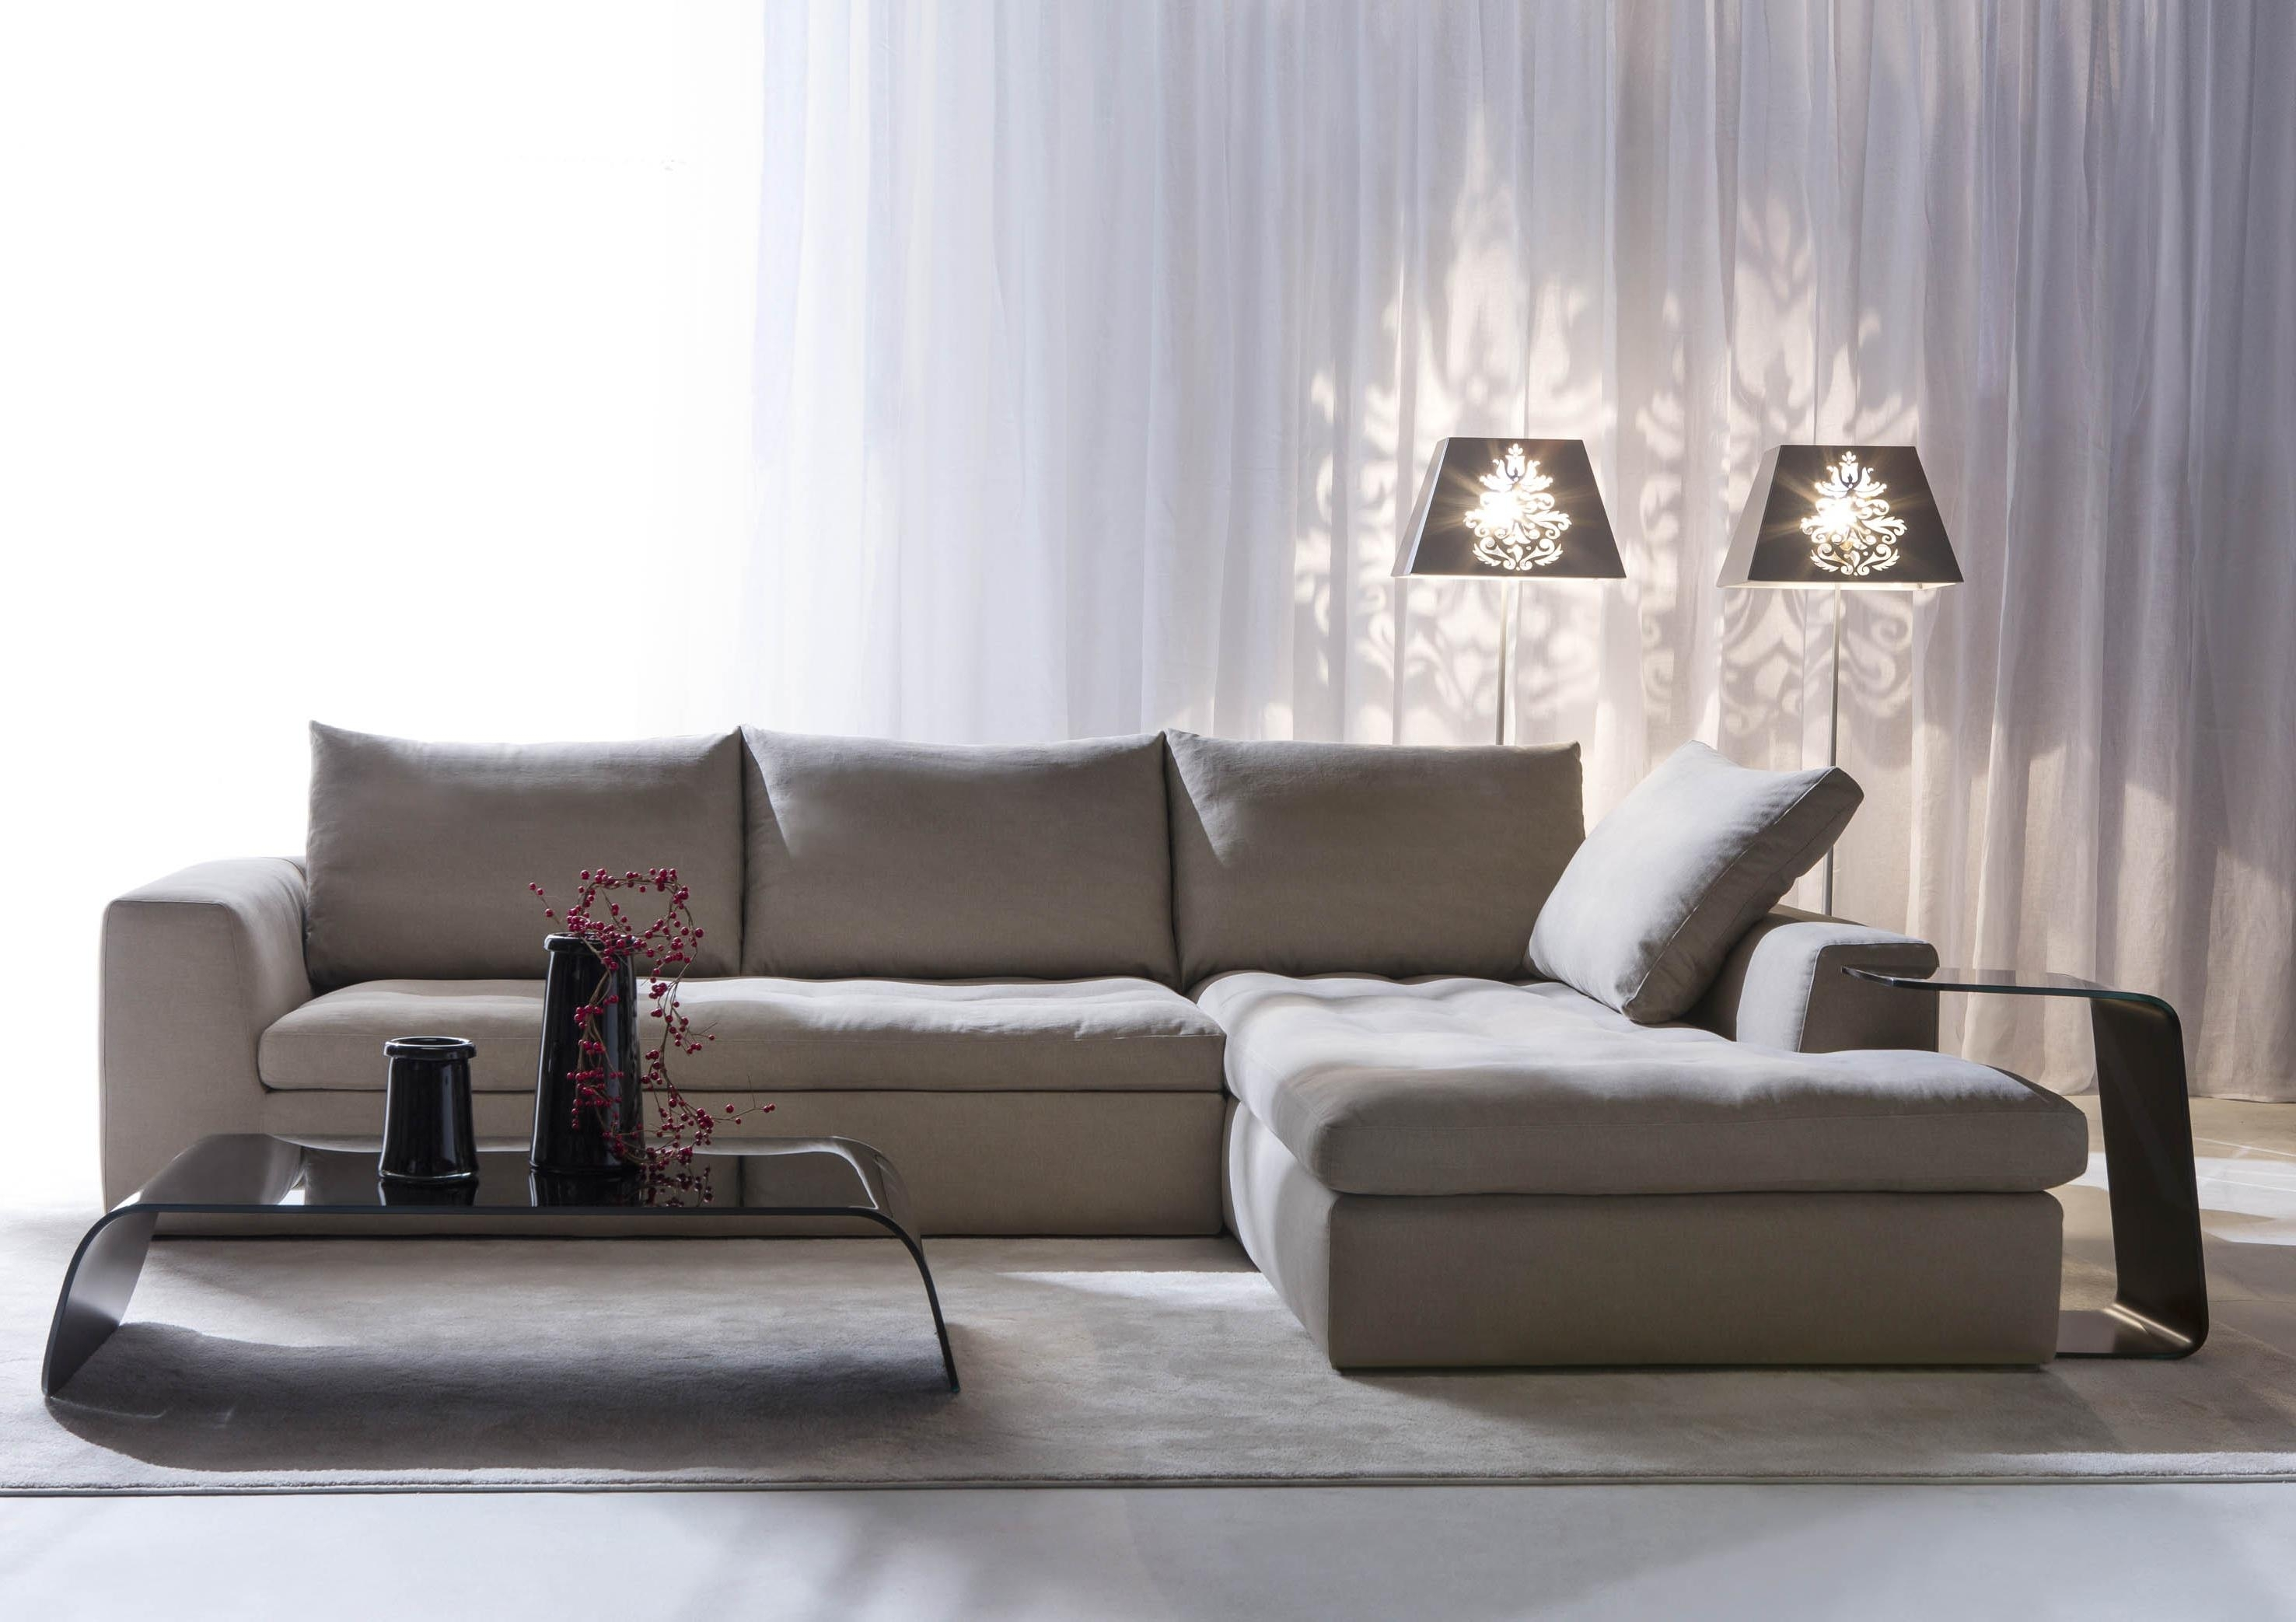 Sectional Sofa Design: Most High Class Wide Sectional Sofas Wide In Wide Sectional Sofas (Image 6 of 10)